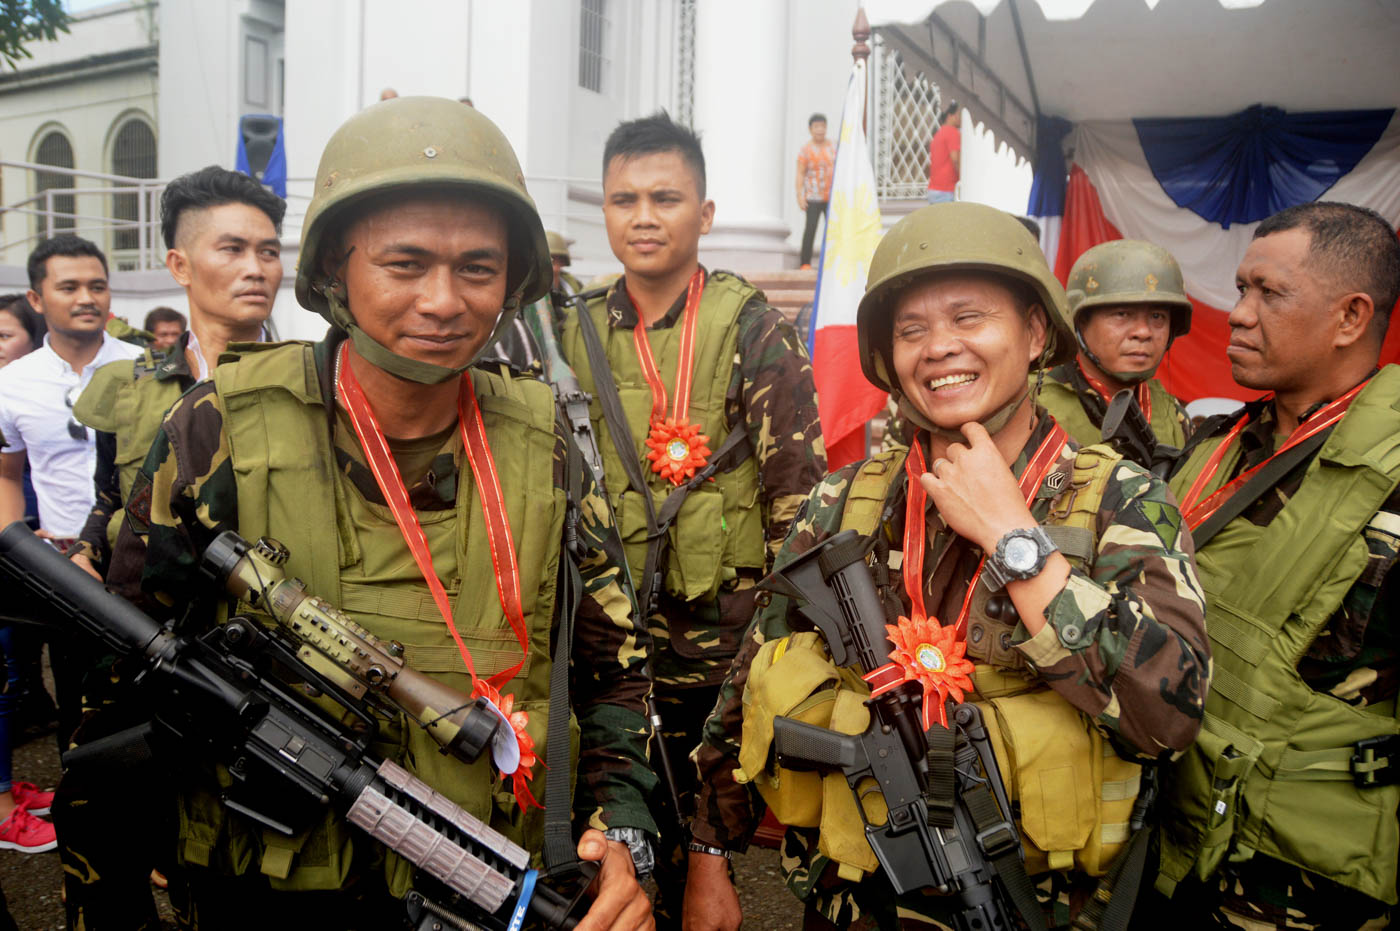 HEROES' PARTY. Some soldiers based in Negros Island are honored on November 3, 2017, in rites held at the Provincial Capitol grounds in Bacolod City. Photo by Marchel Espina/Rappler